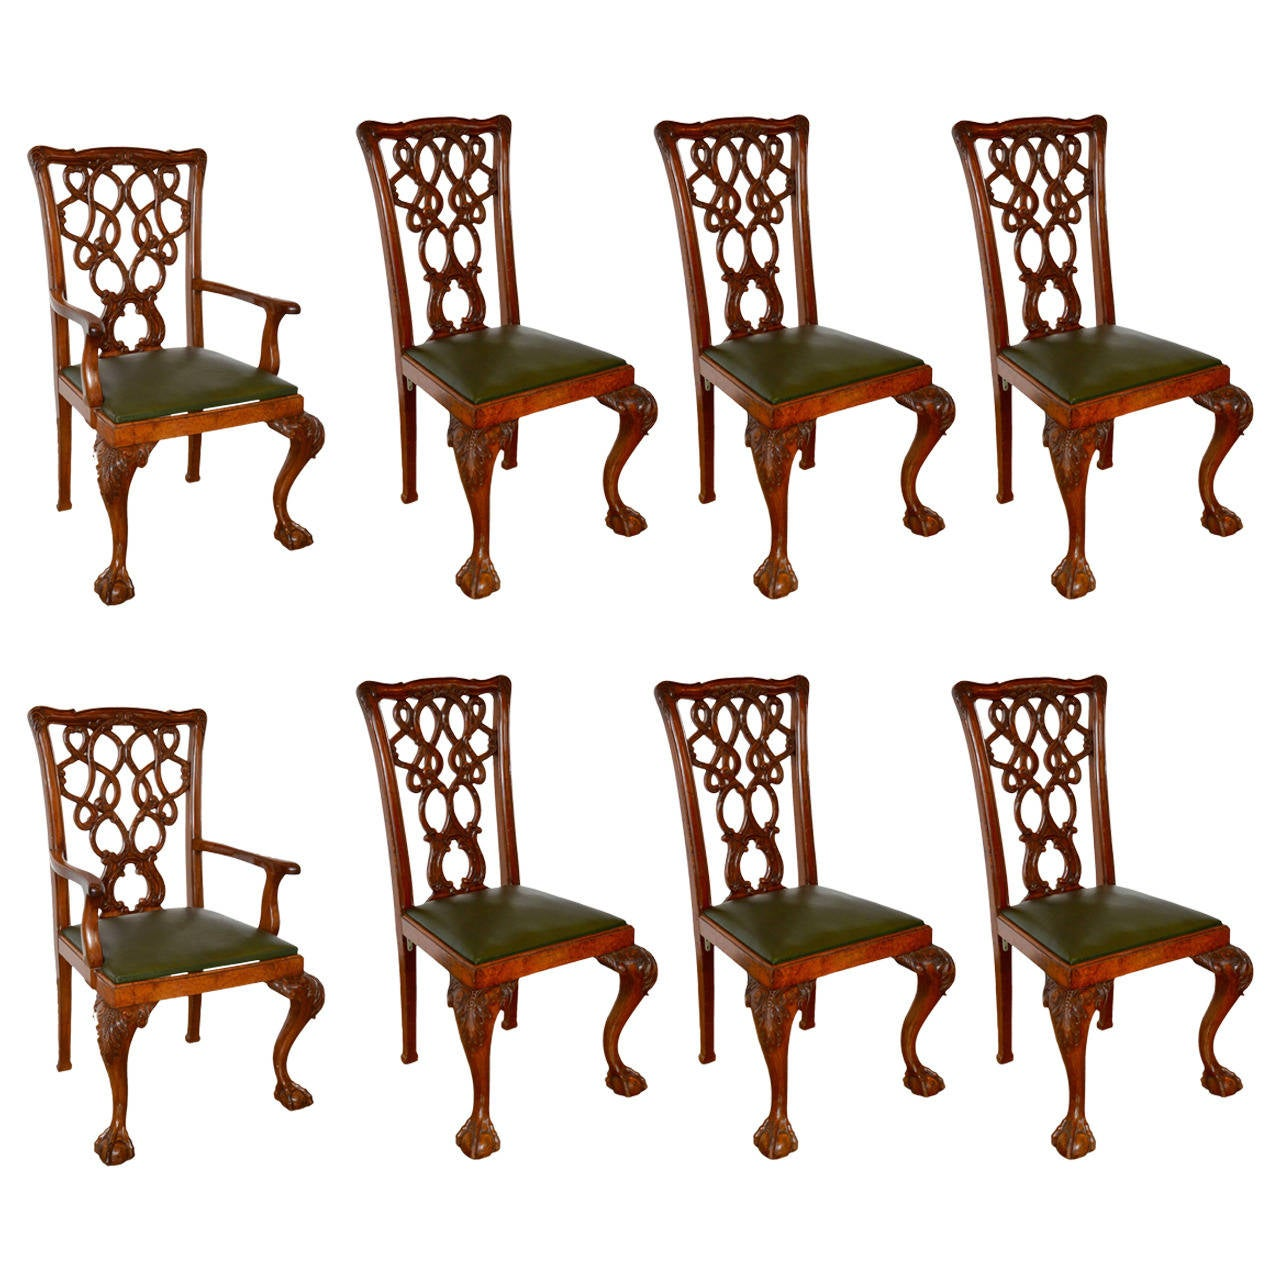 English mahogany chippendale dining chairs for sale at 1stdibs for Mahogany dining room furniture